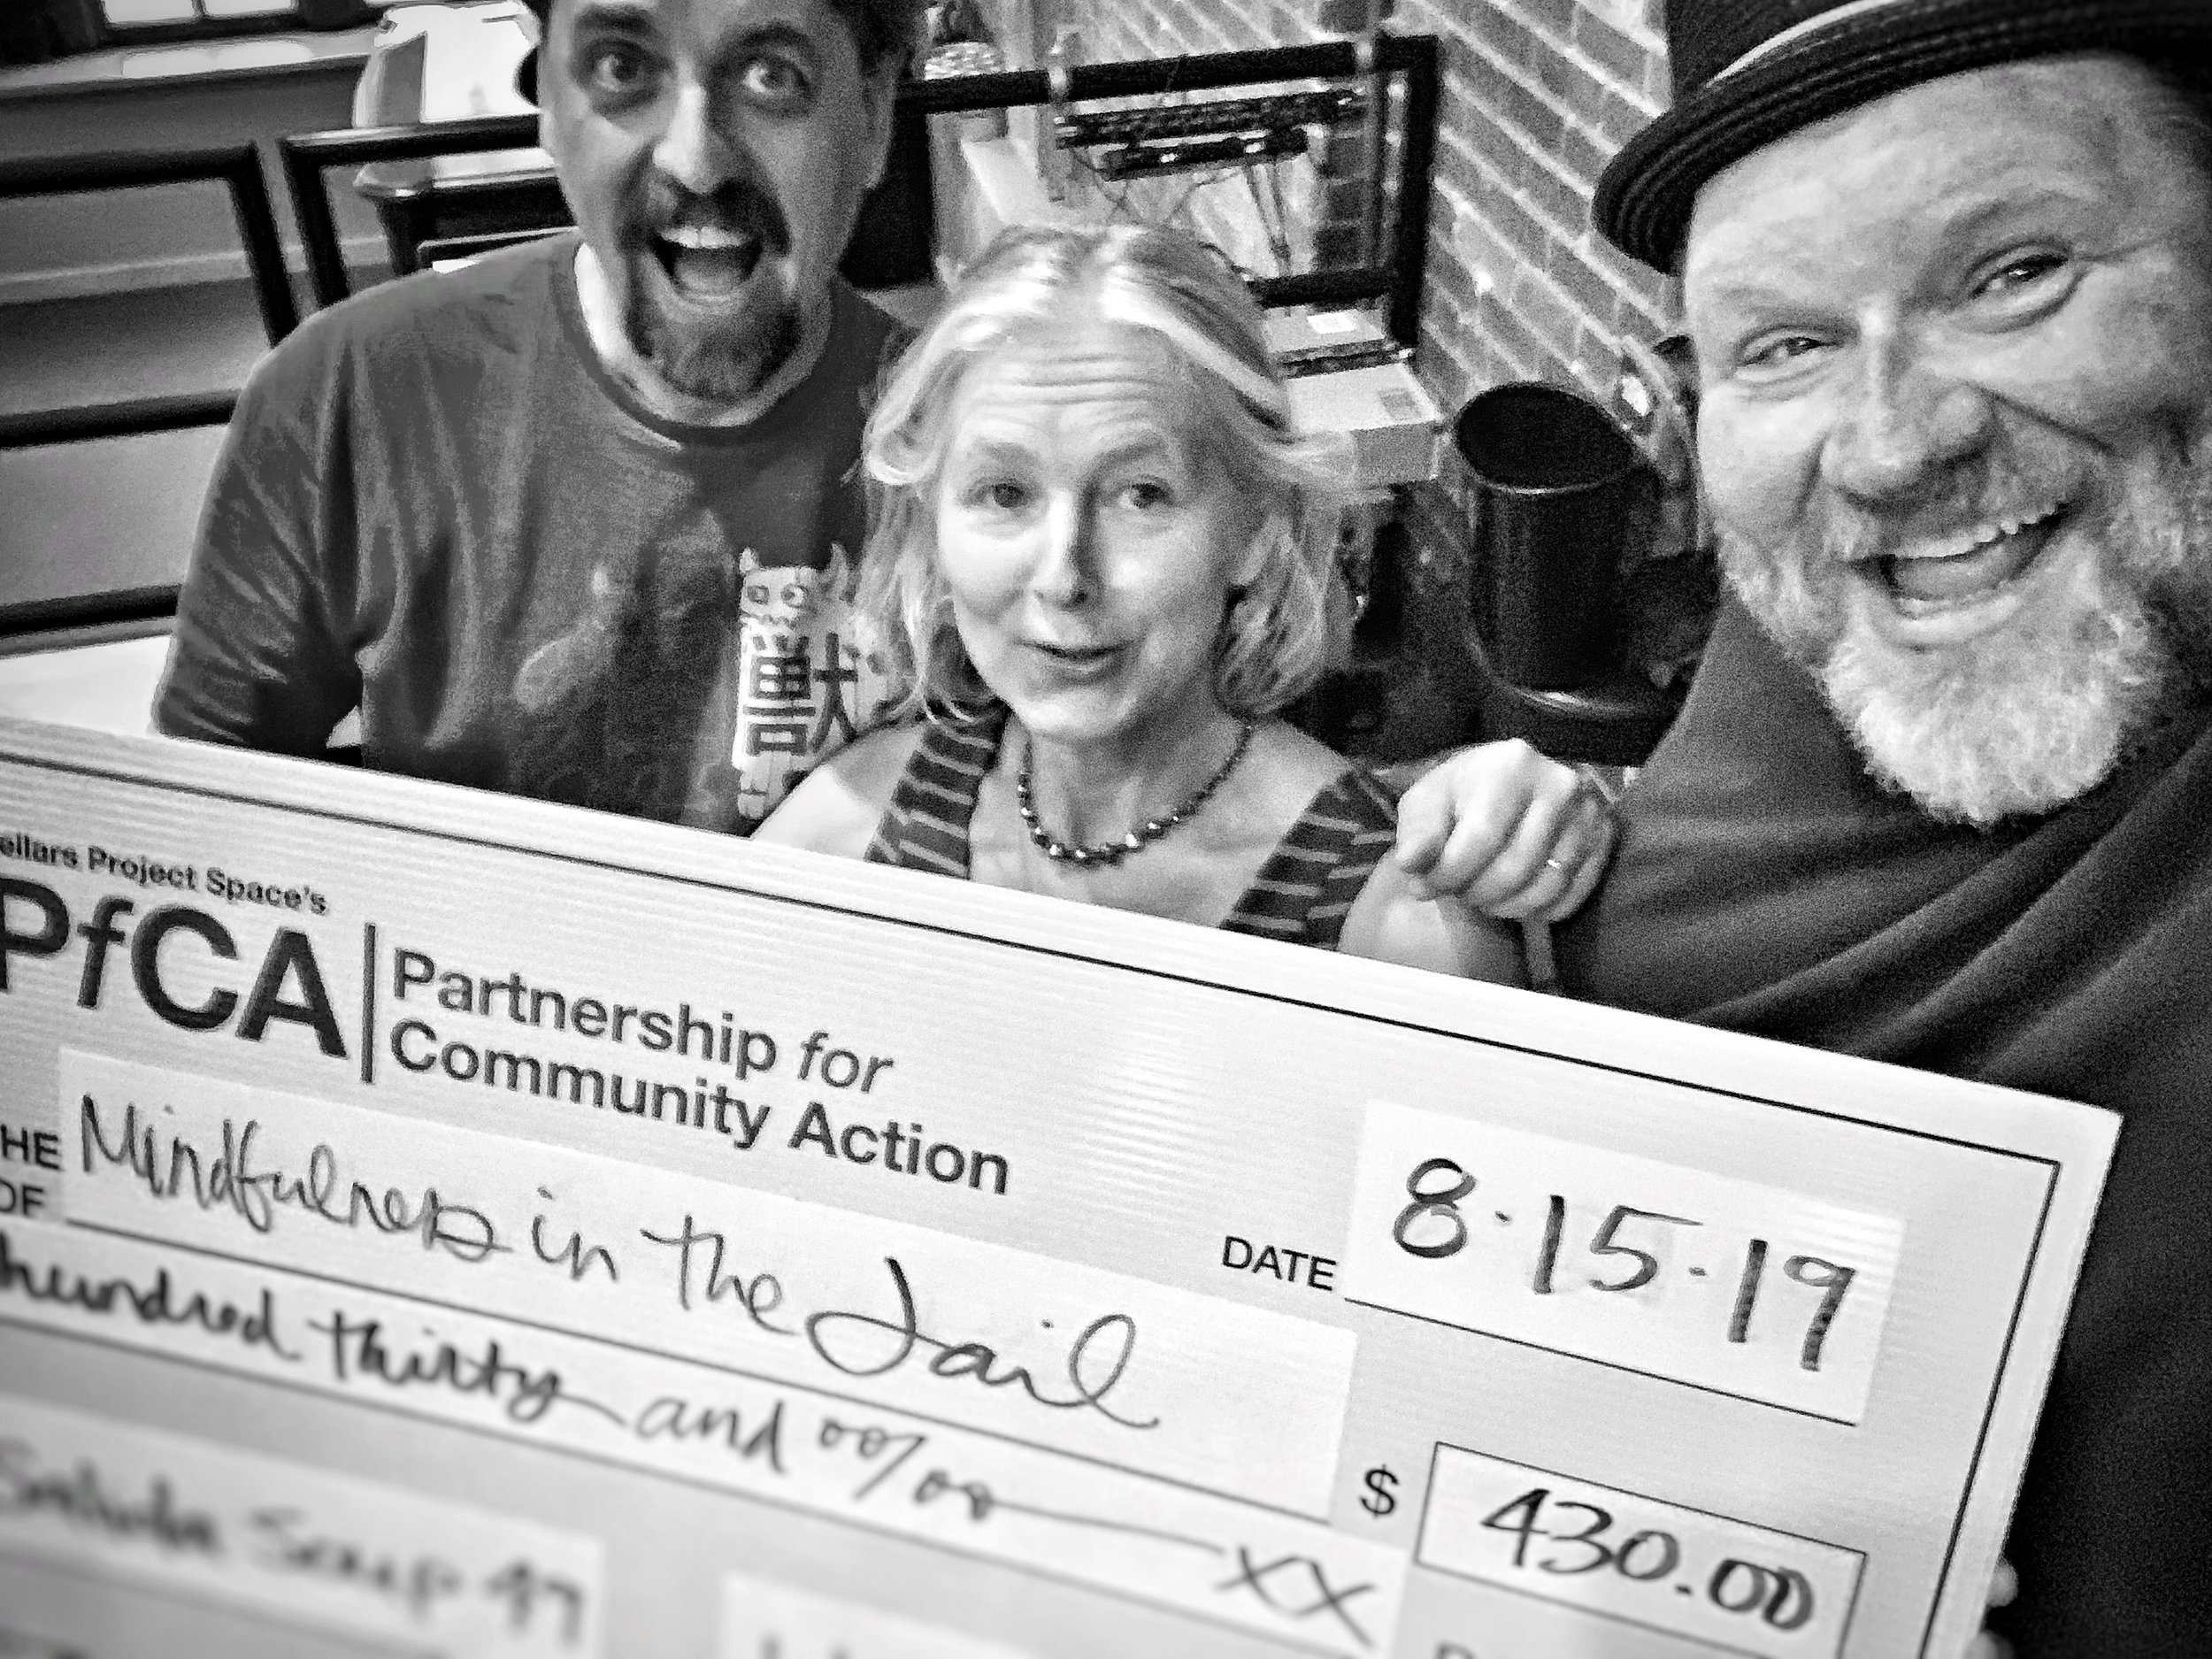 Mark and Jimmy of the PfCA pose with Denise Ackert, whose Mindfulness in the Jail program won the Big Check of $430 at Salida Soup 49 on August 15th.